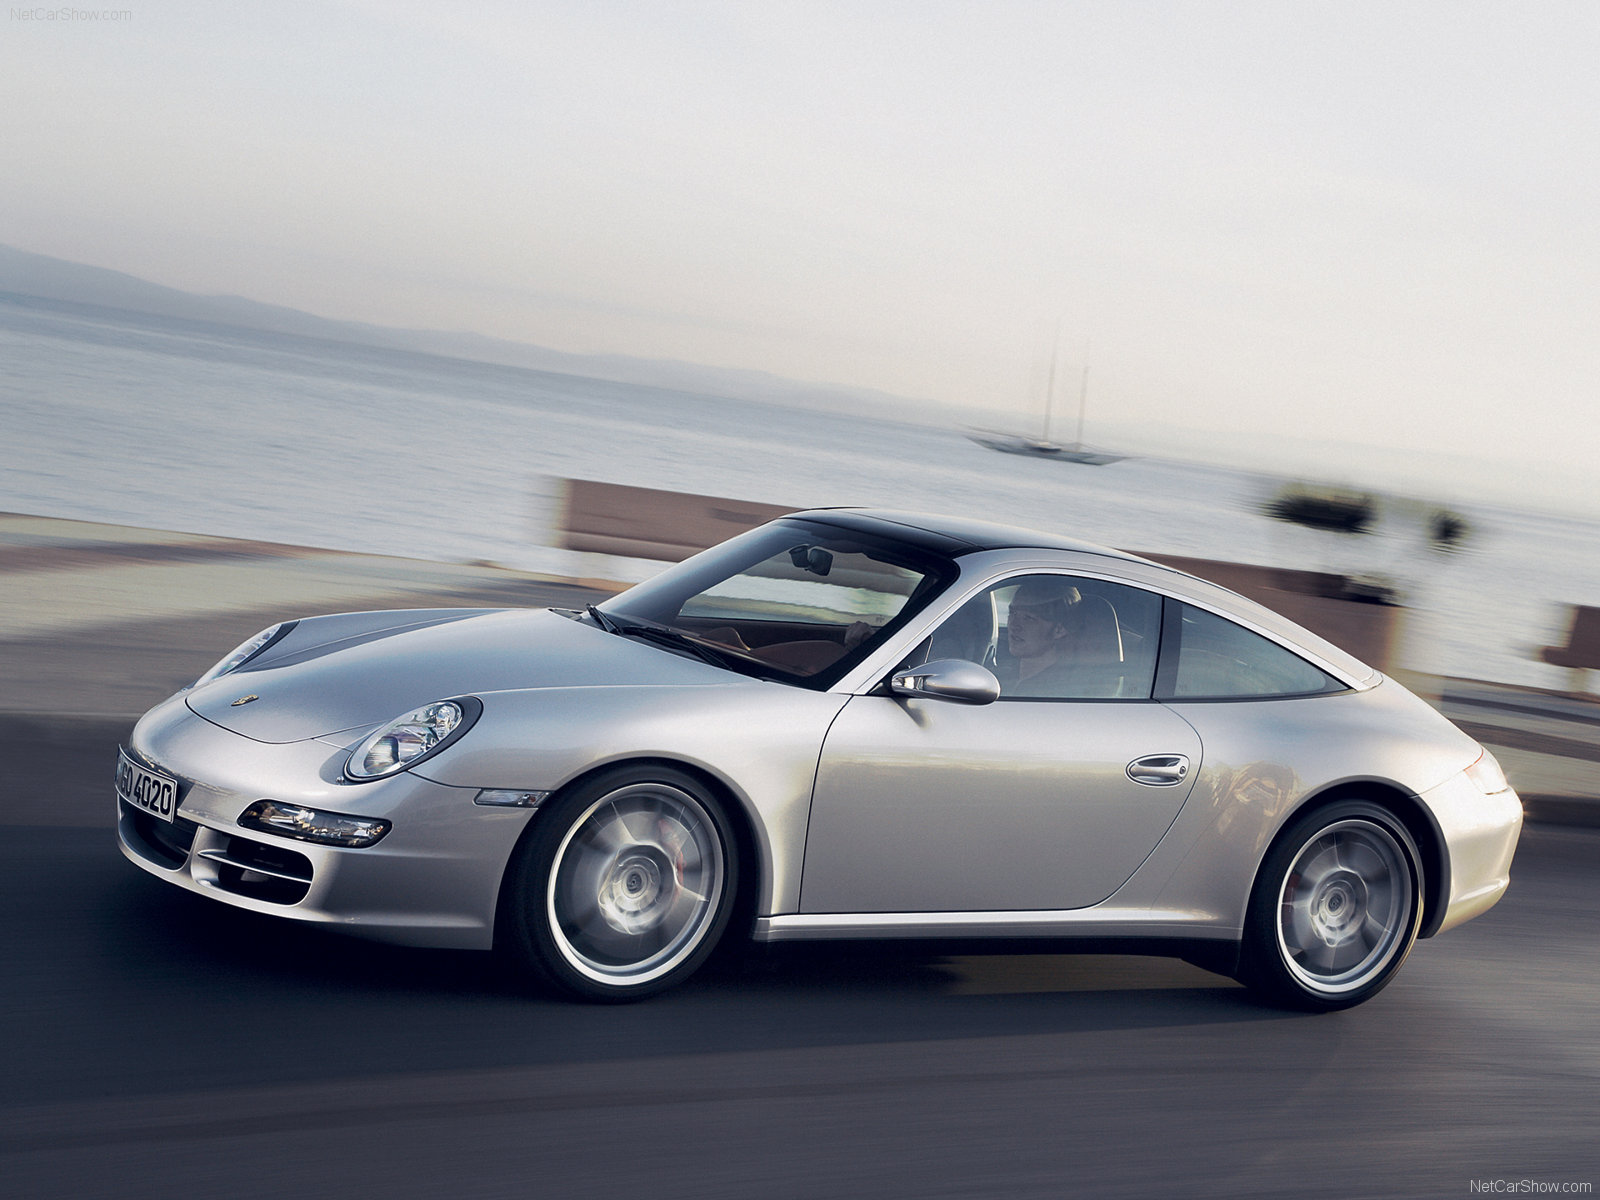 2007 Silver Porsche 911 Targa 4s Wallpapers